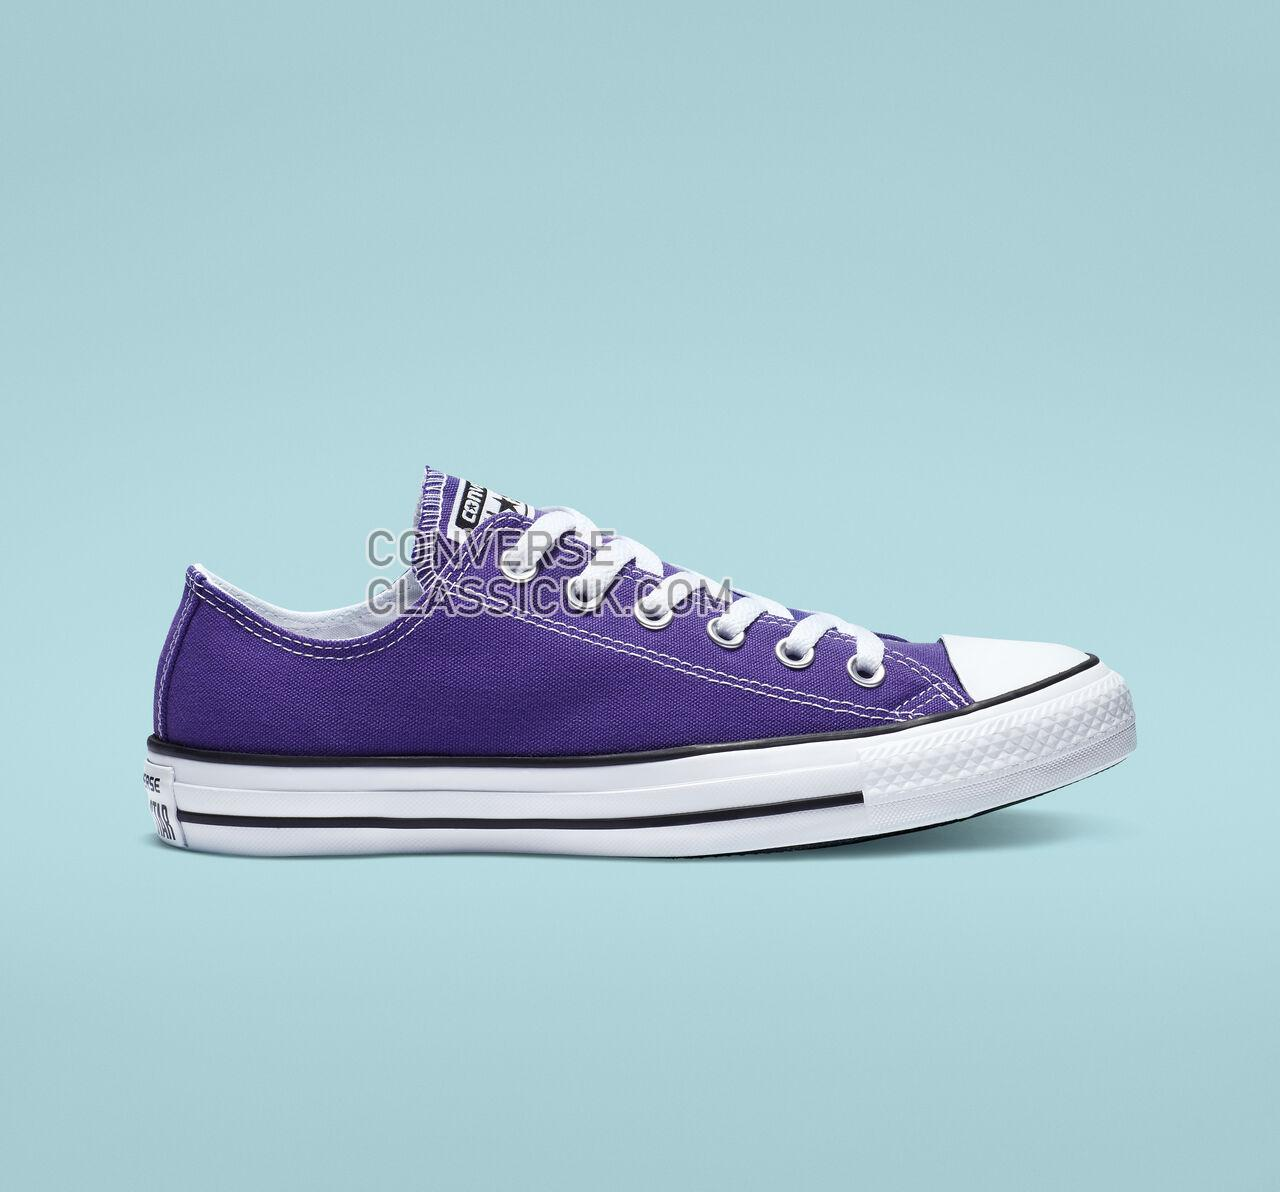 Converse Chuck Taylor All Star Low Top Mens Womens Unisex 137837F Electric Purple Shoes